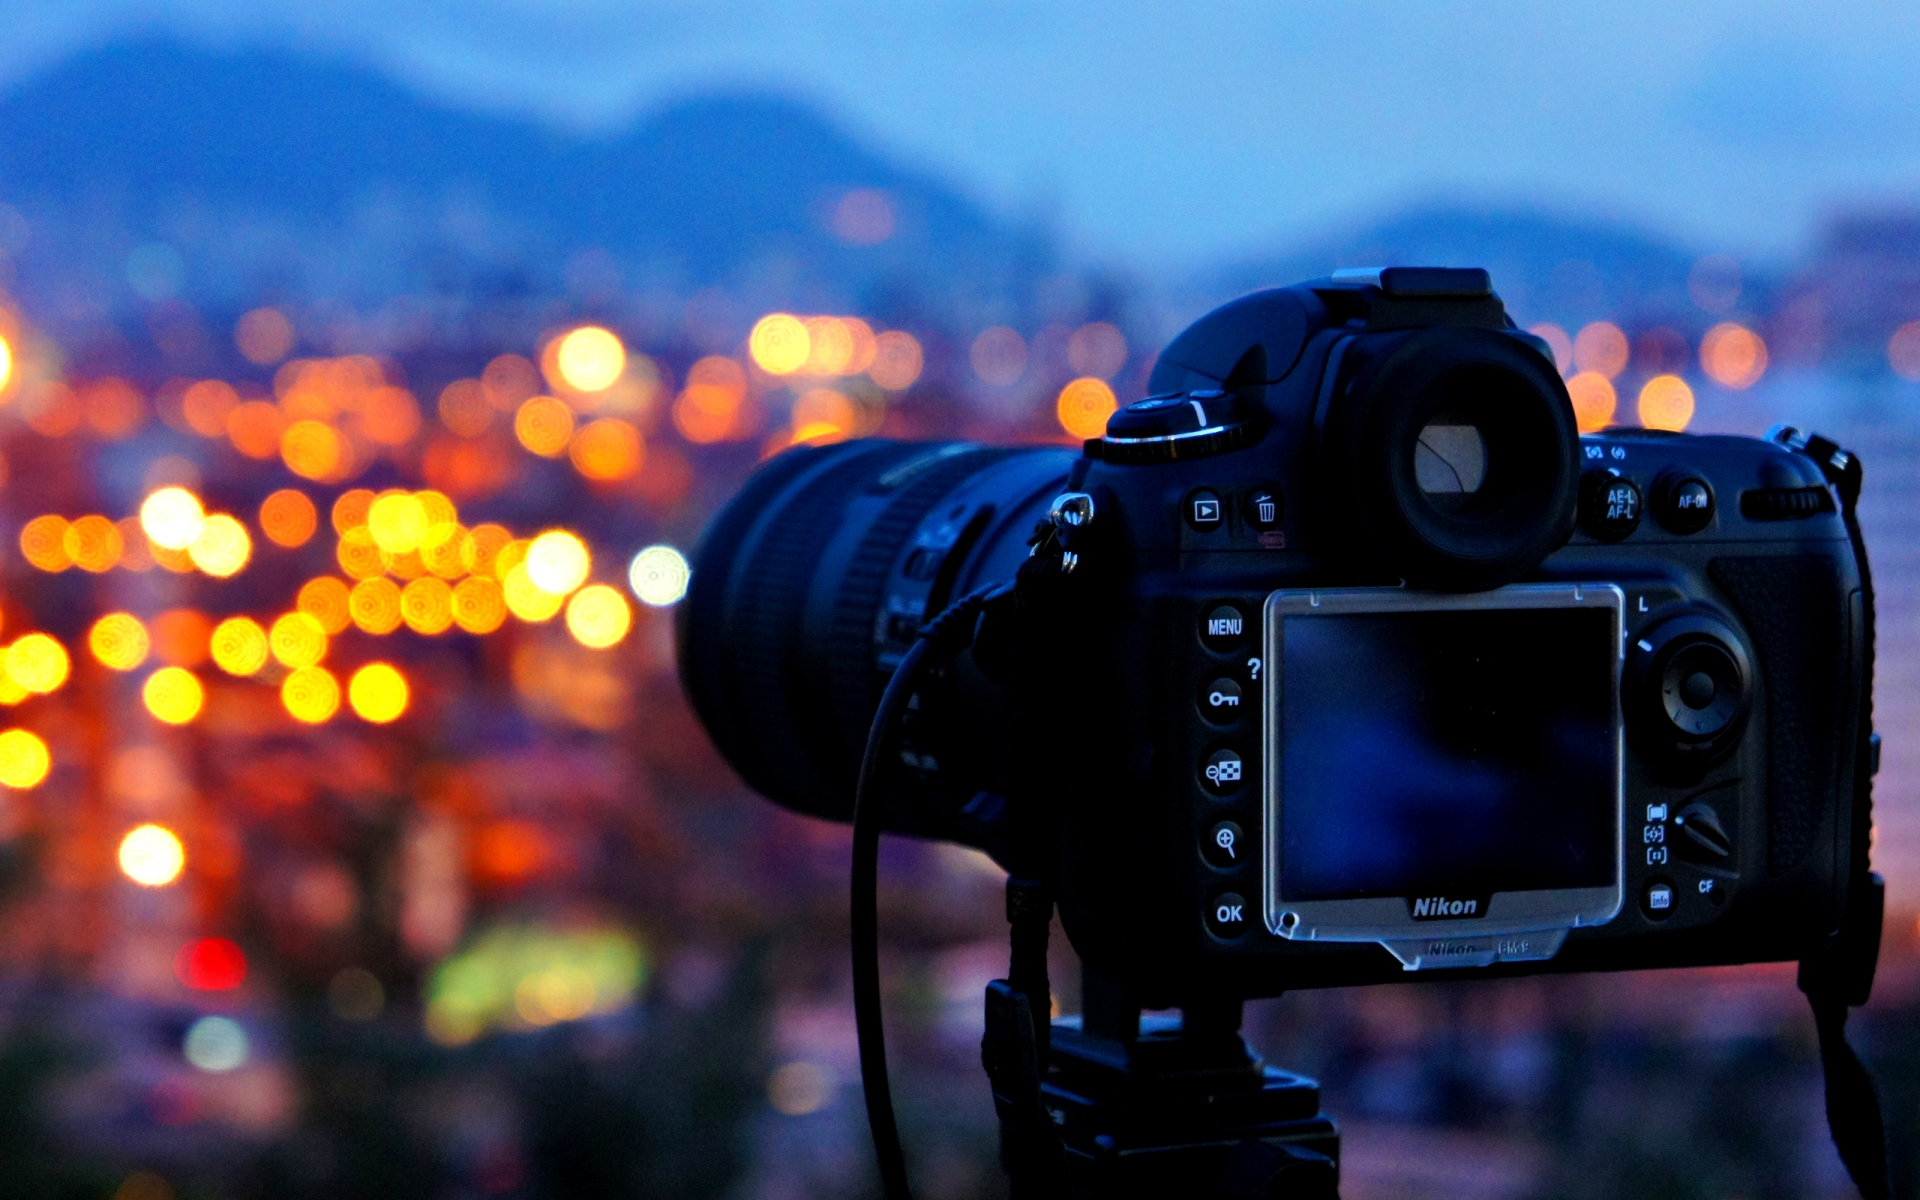 No Background Images Top 15 Common Mistakes To Avoid In Digital Photography